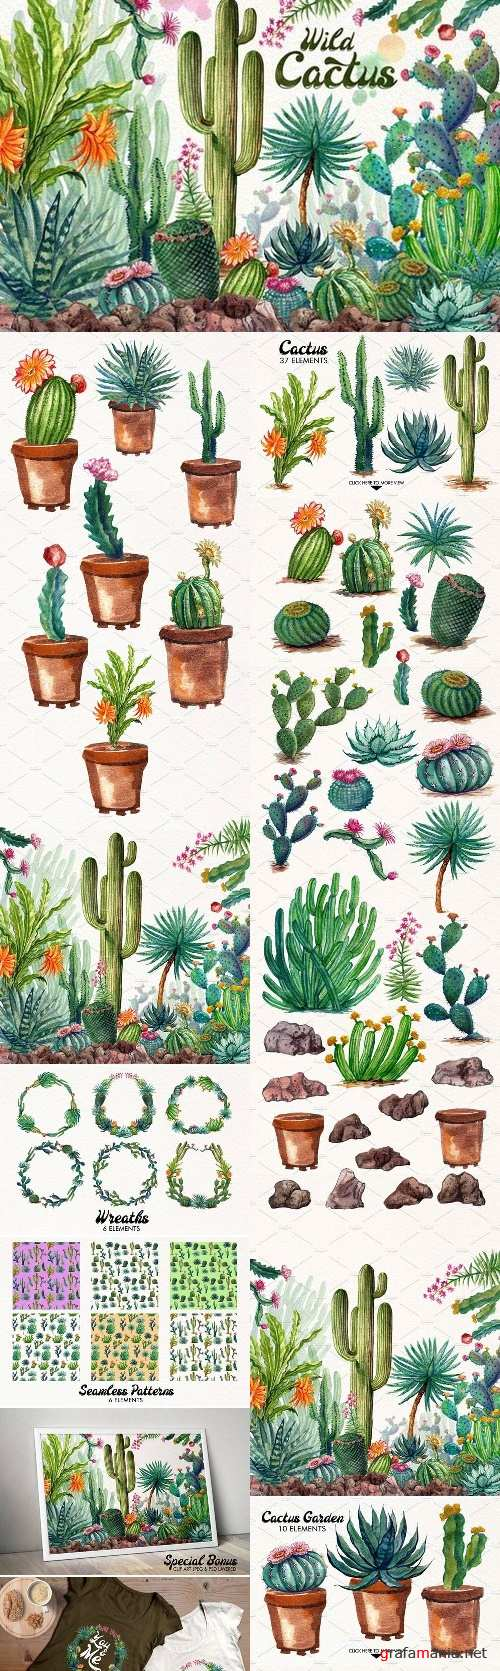 Watercolor Cactuses 1485736